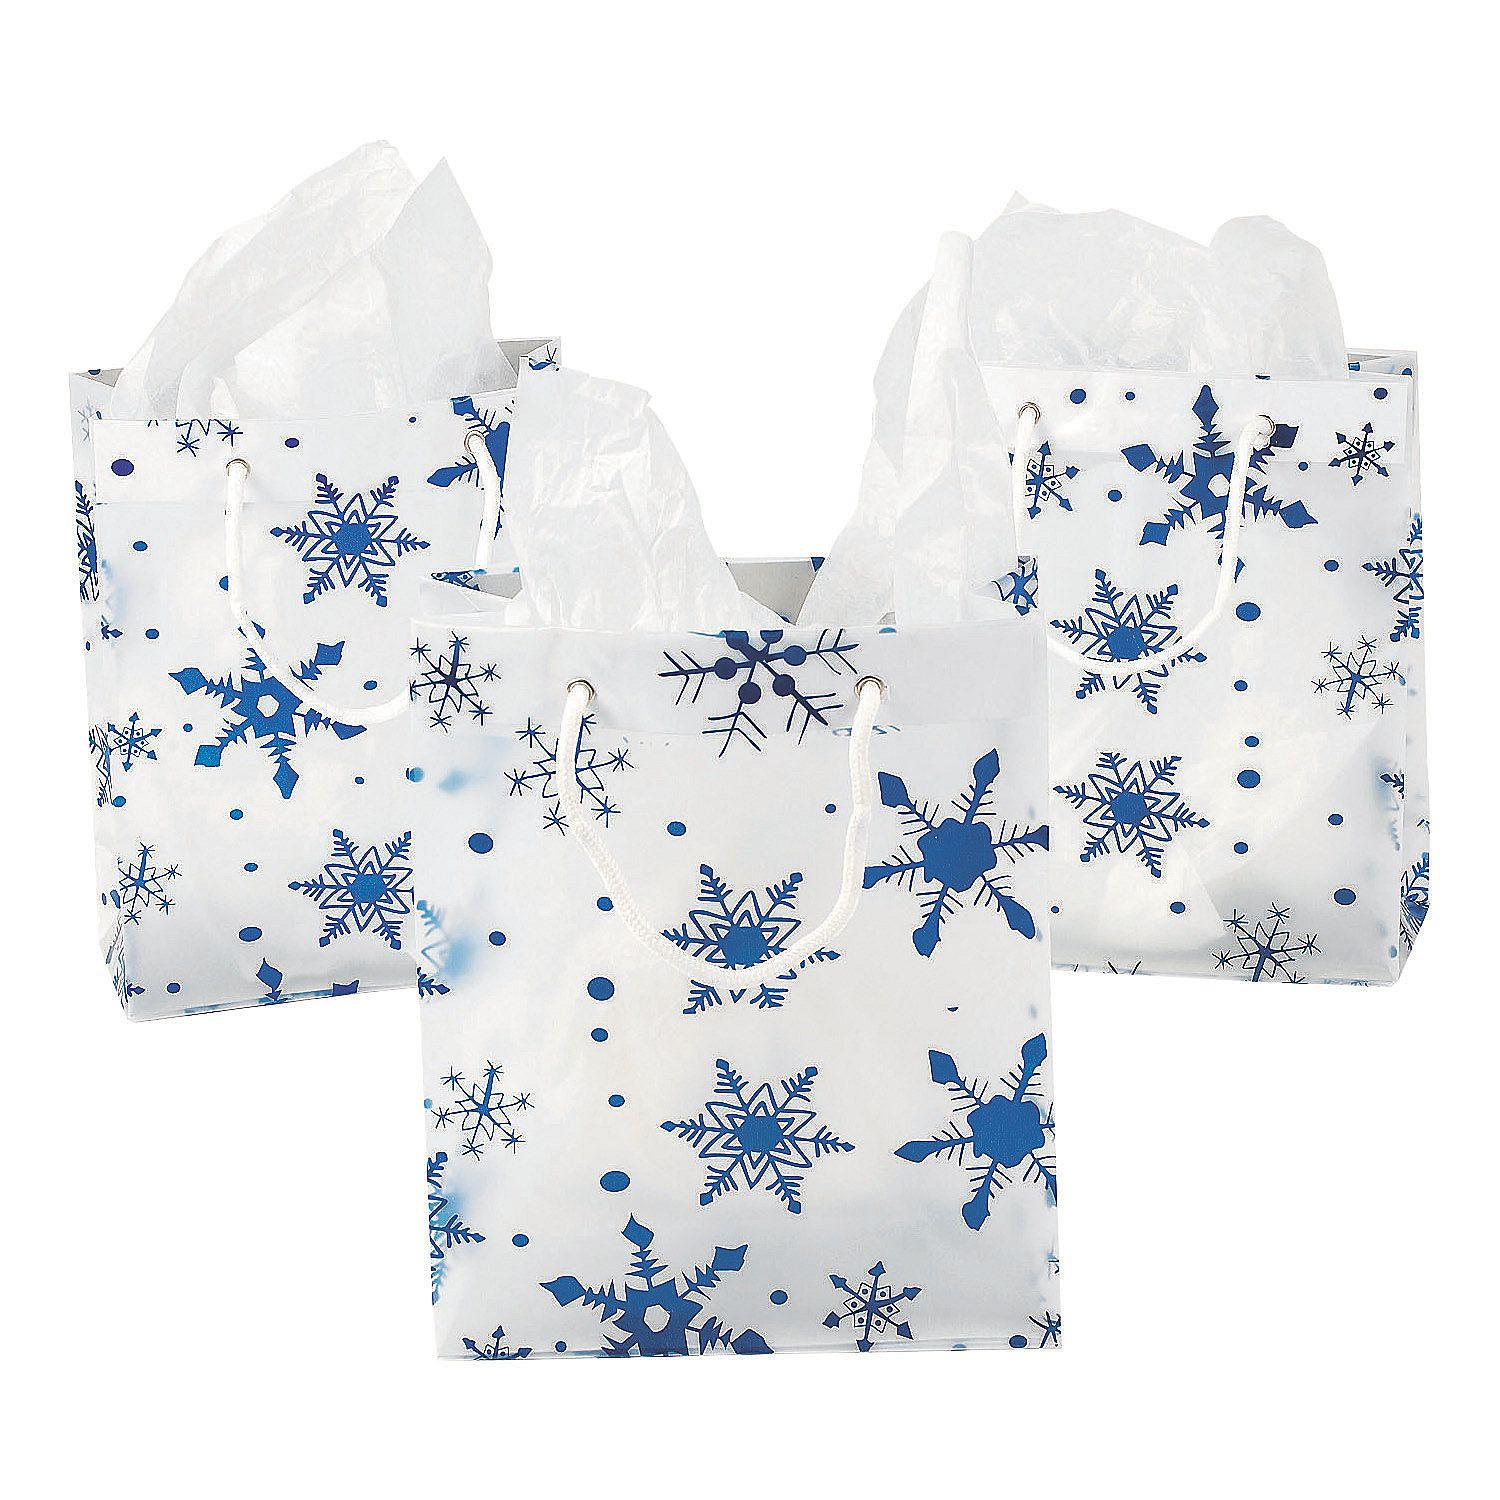 Medium+Clear+Gift+Bags+with+Snowflakes++OrientalTrading